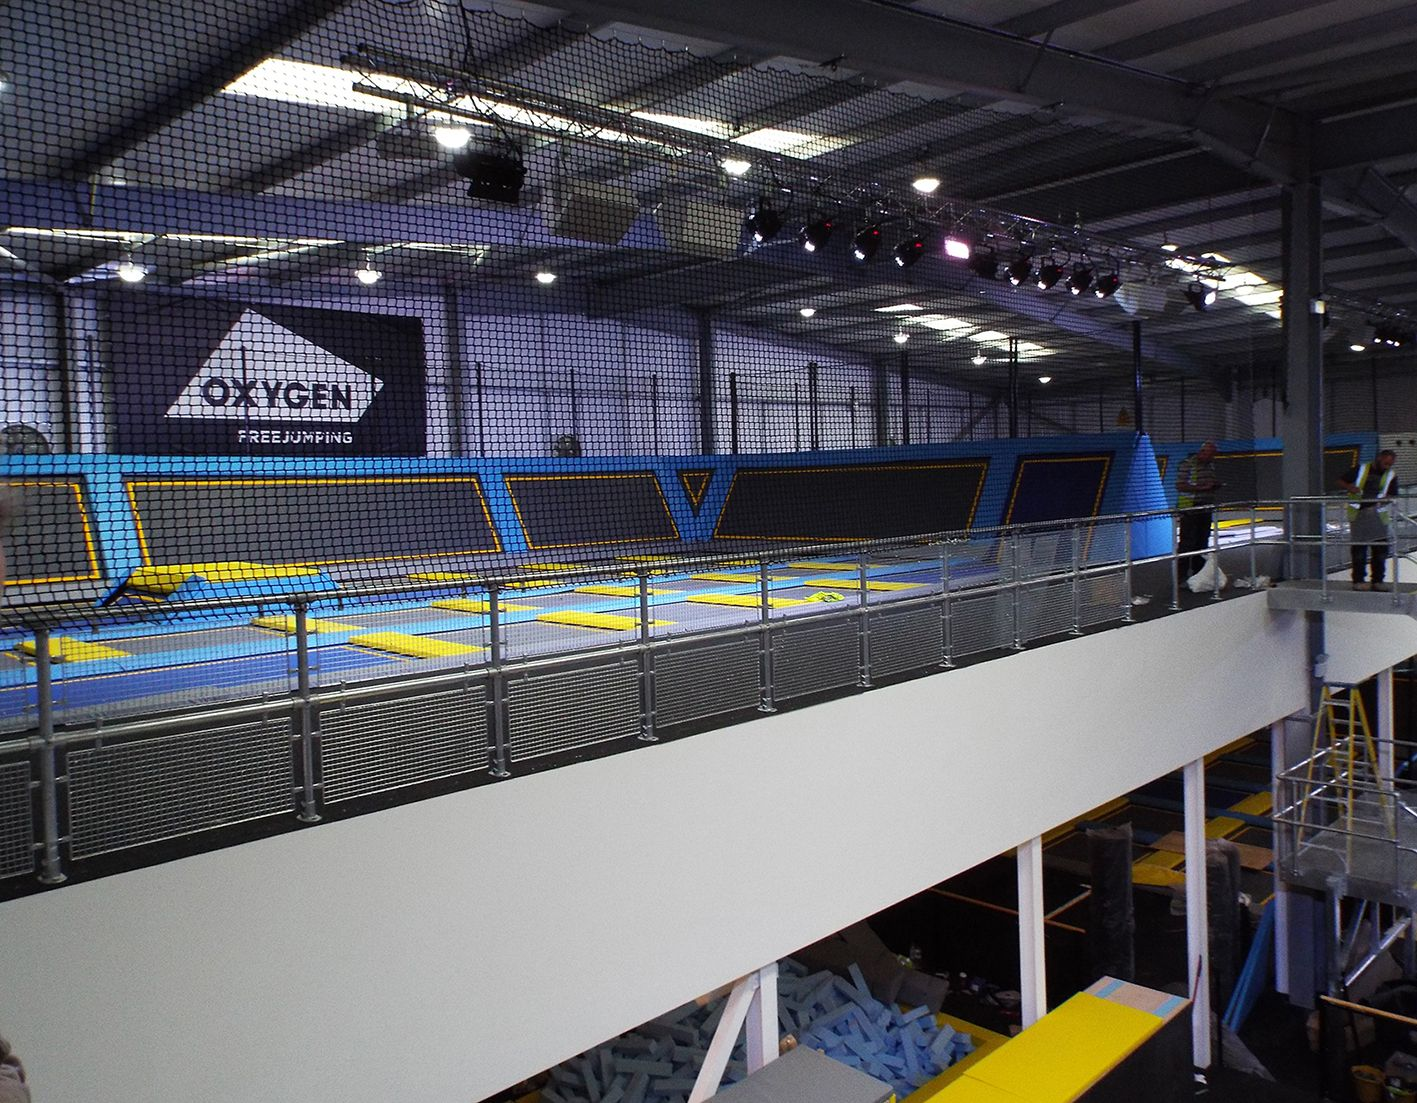 Oh what a site londons first trampoline park london